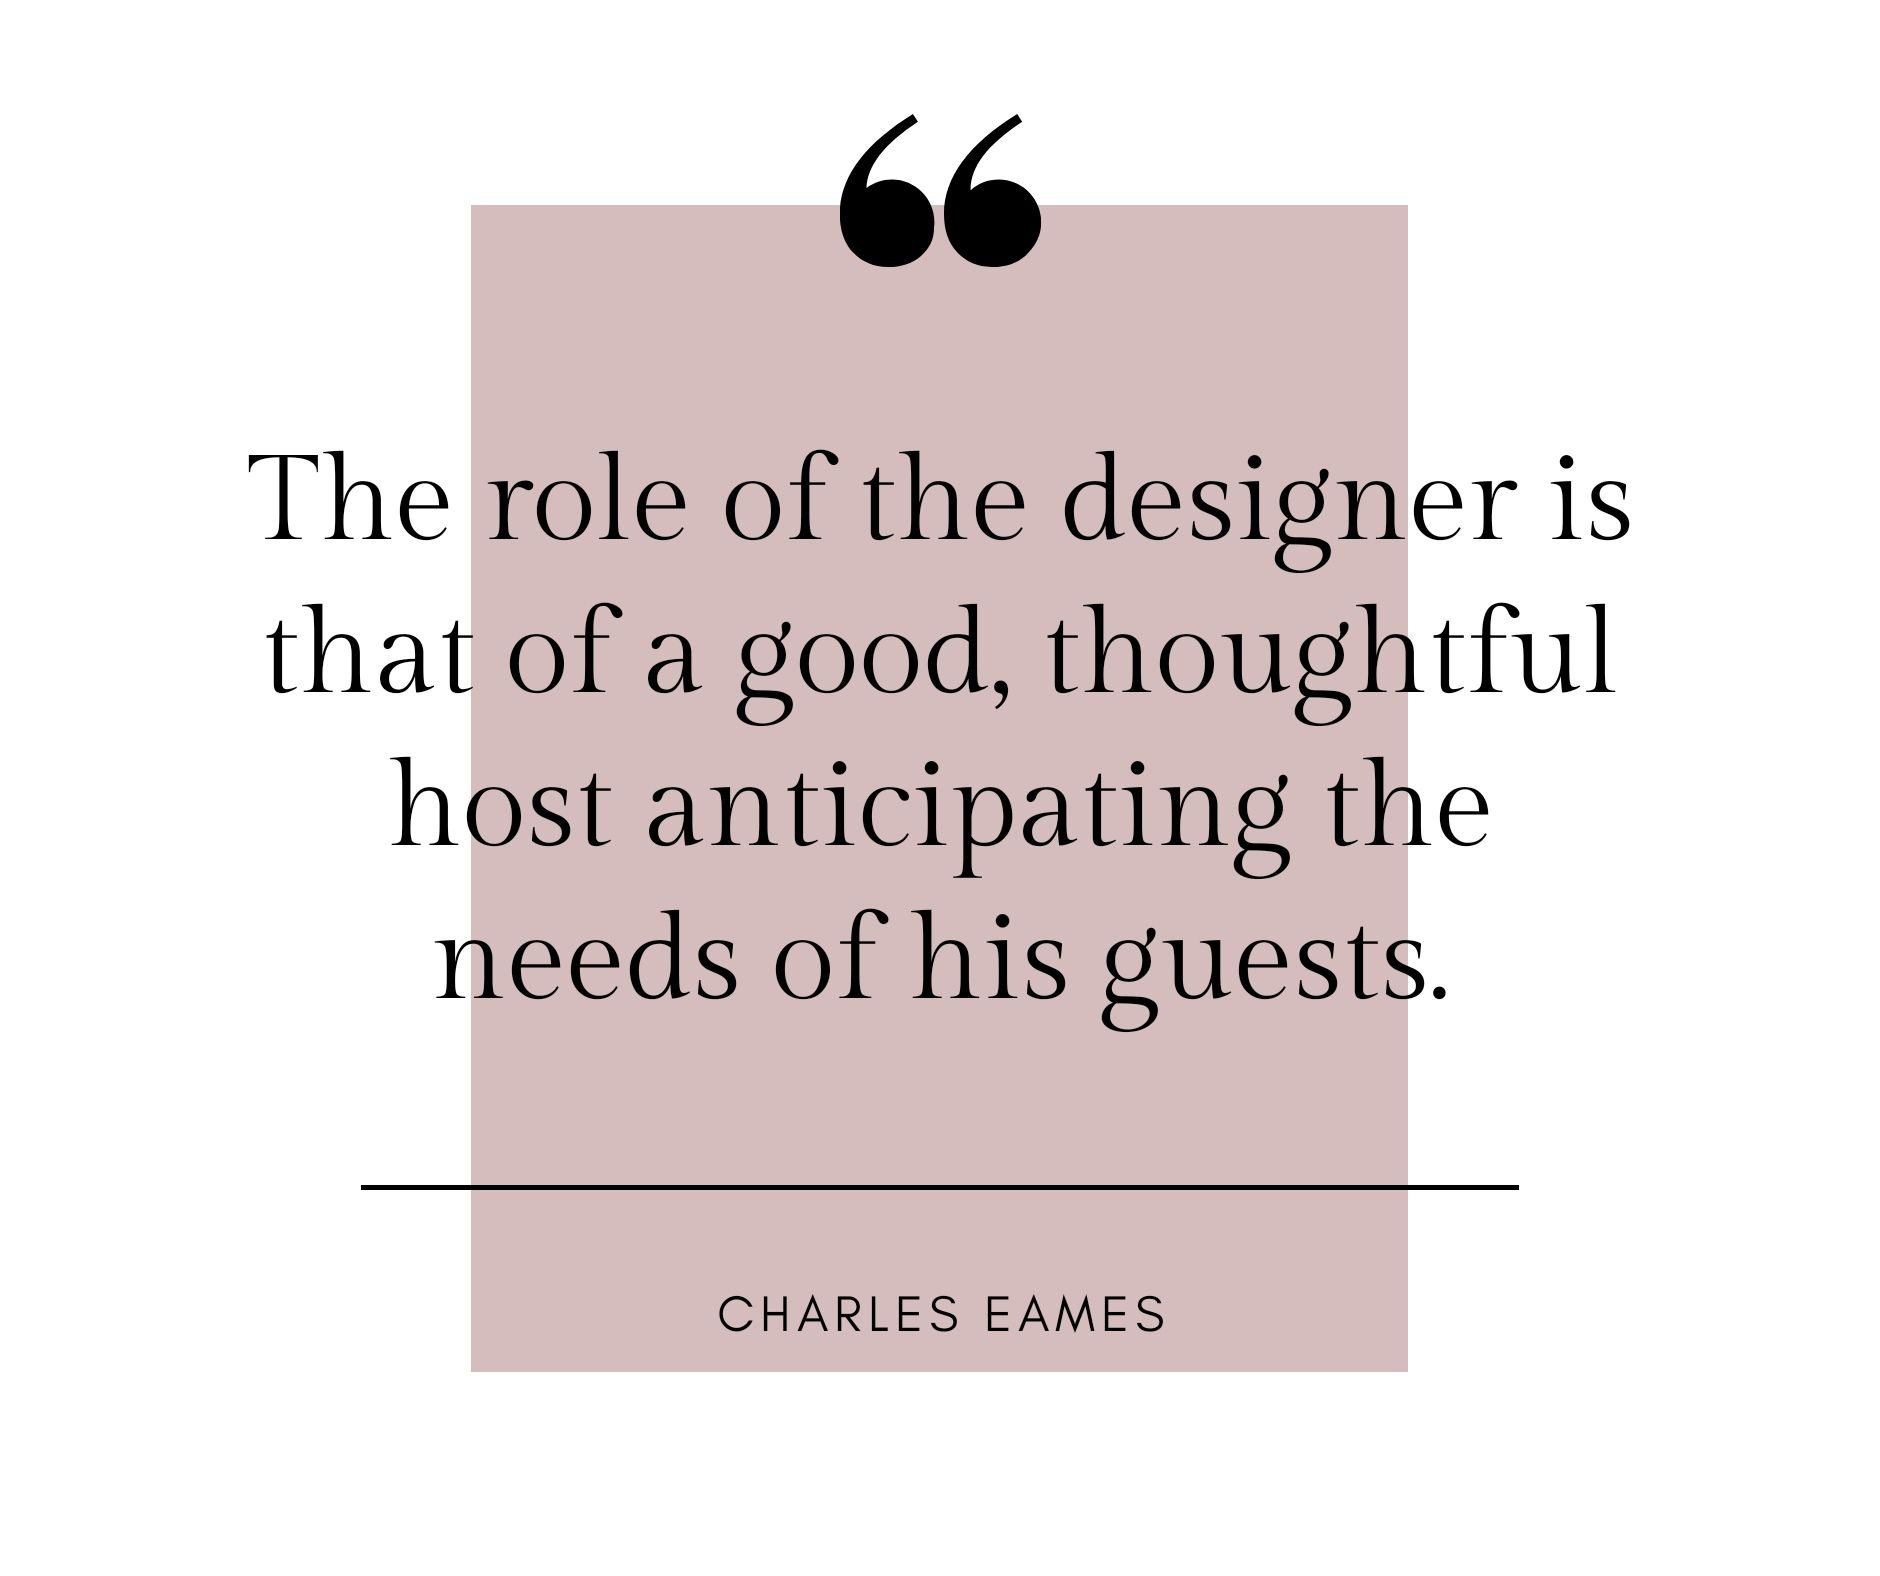 I transform clients' homes to suit the way they live . #interiordesign #interiordesigning #interiordesignerslife #interiordesigntips #interiordesigngoals #homerenovations #interiordesignlondon #londonhomes #inspiredinteriors #contemporaryinteriordesigner #interiordesignerlondon #interiordesignlondon #chelseainteriordesigner #fulhaminteriordesigner #jenesaisquoilondon